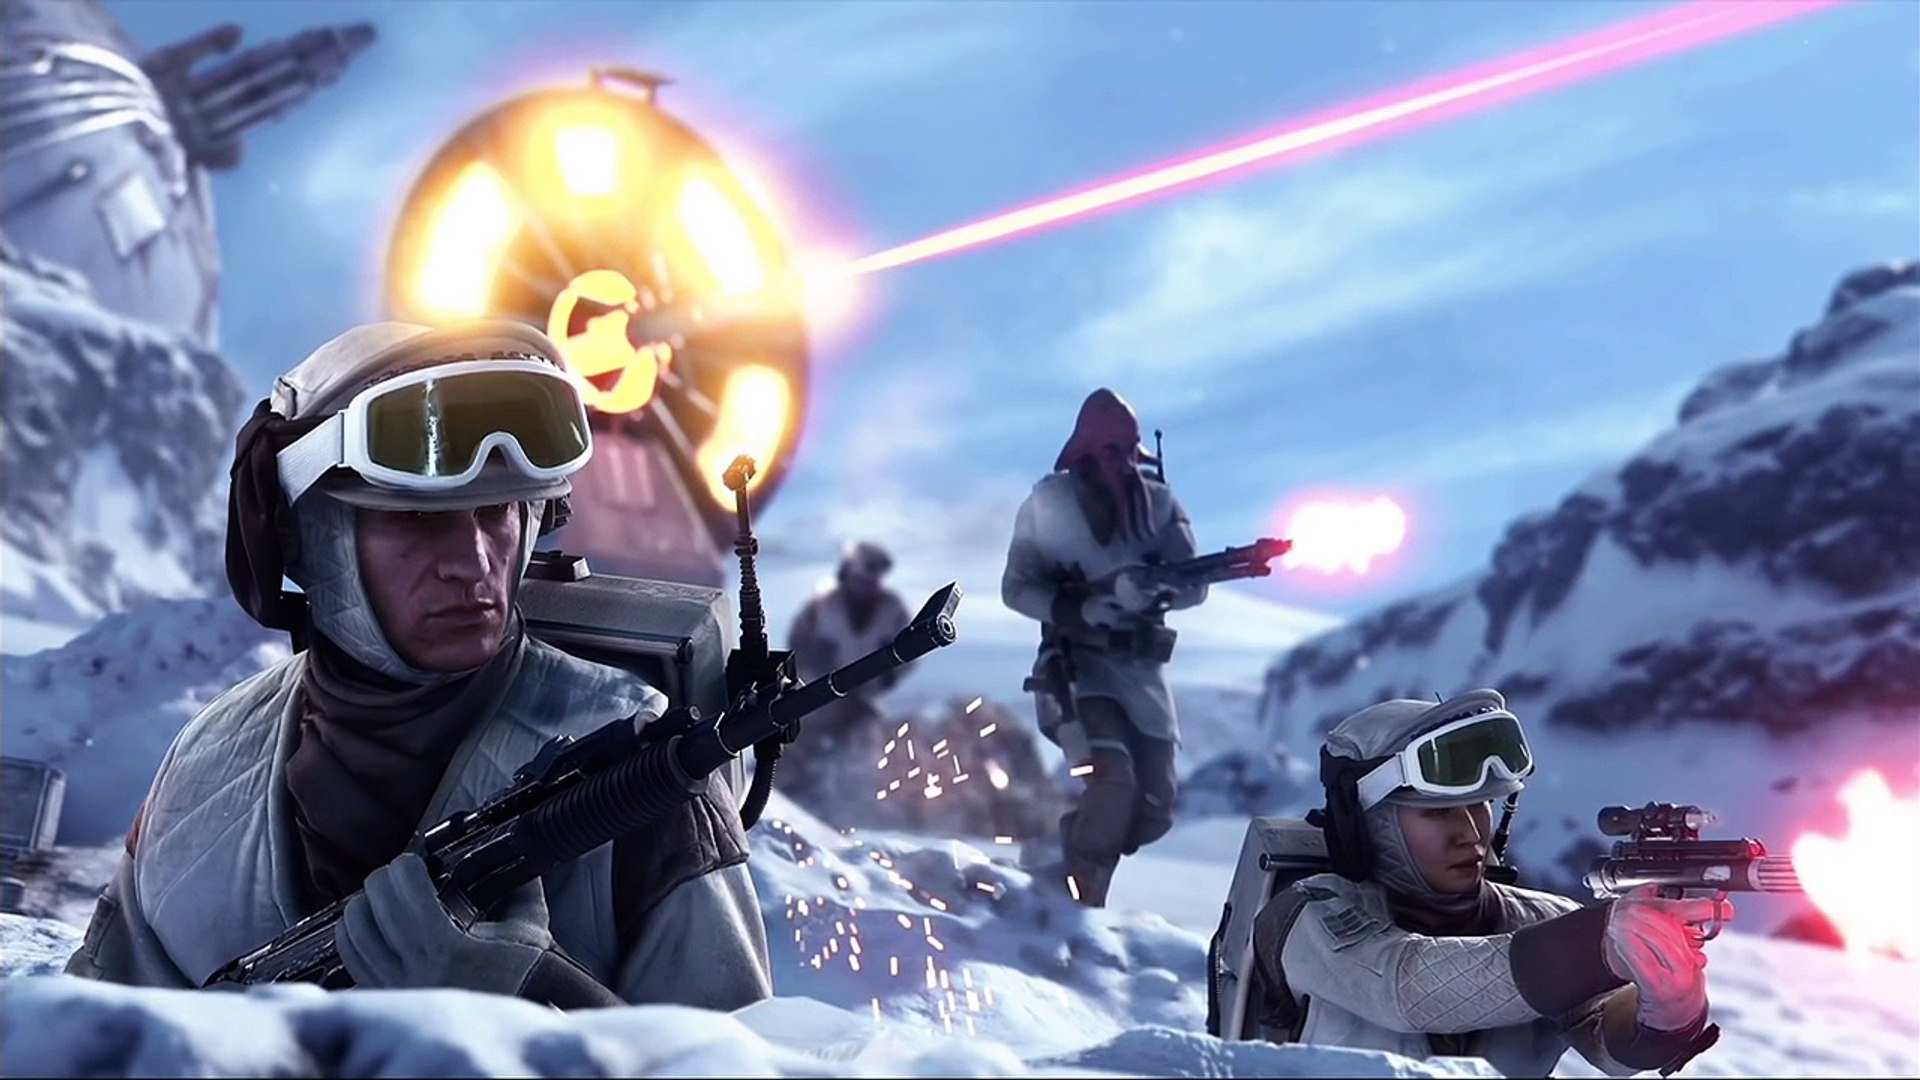 Star Wars Battlefront - Exclusive Multiplayer Game Play Footage